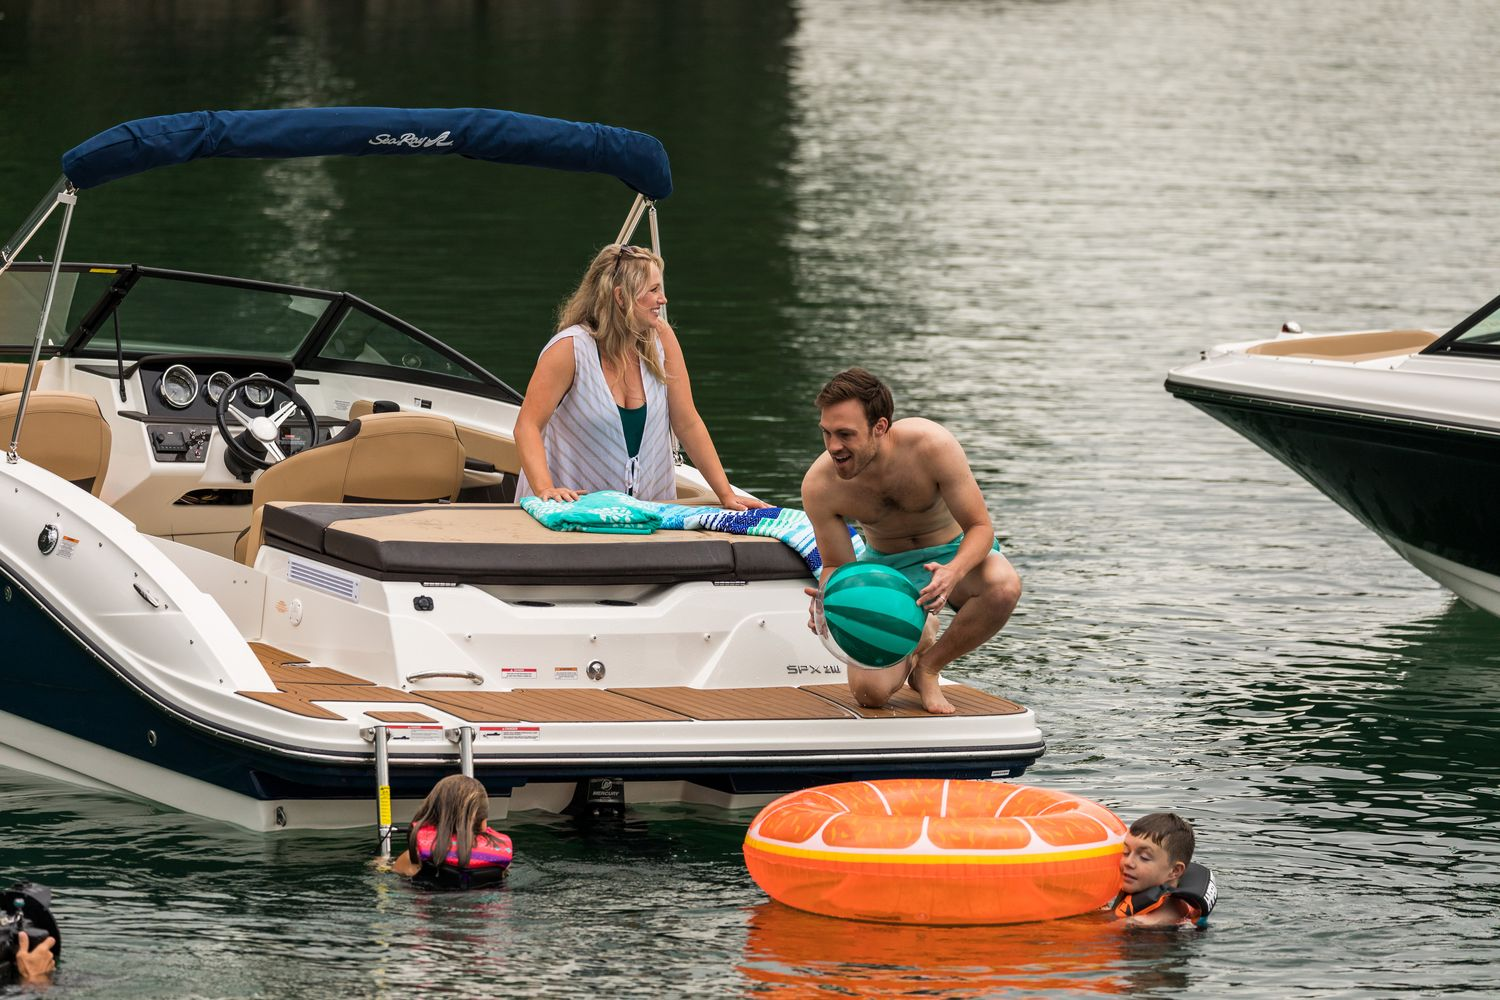 Sea Ray SPX 210 - great for water toys